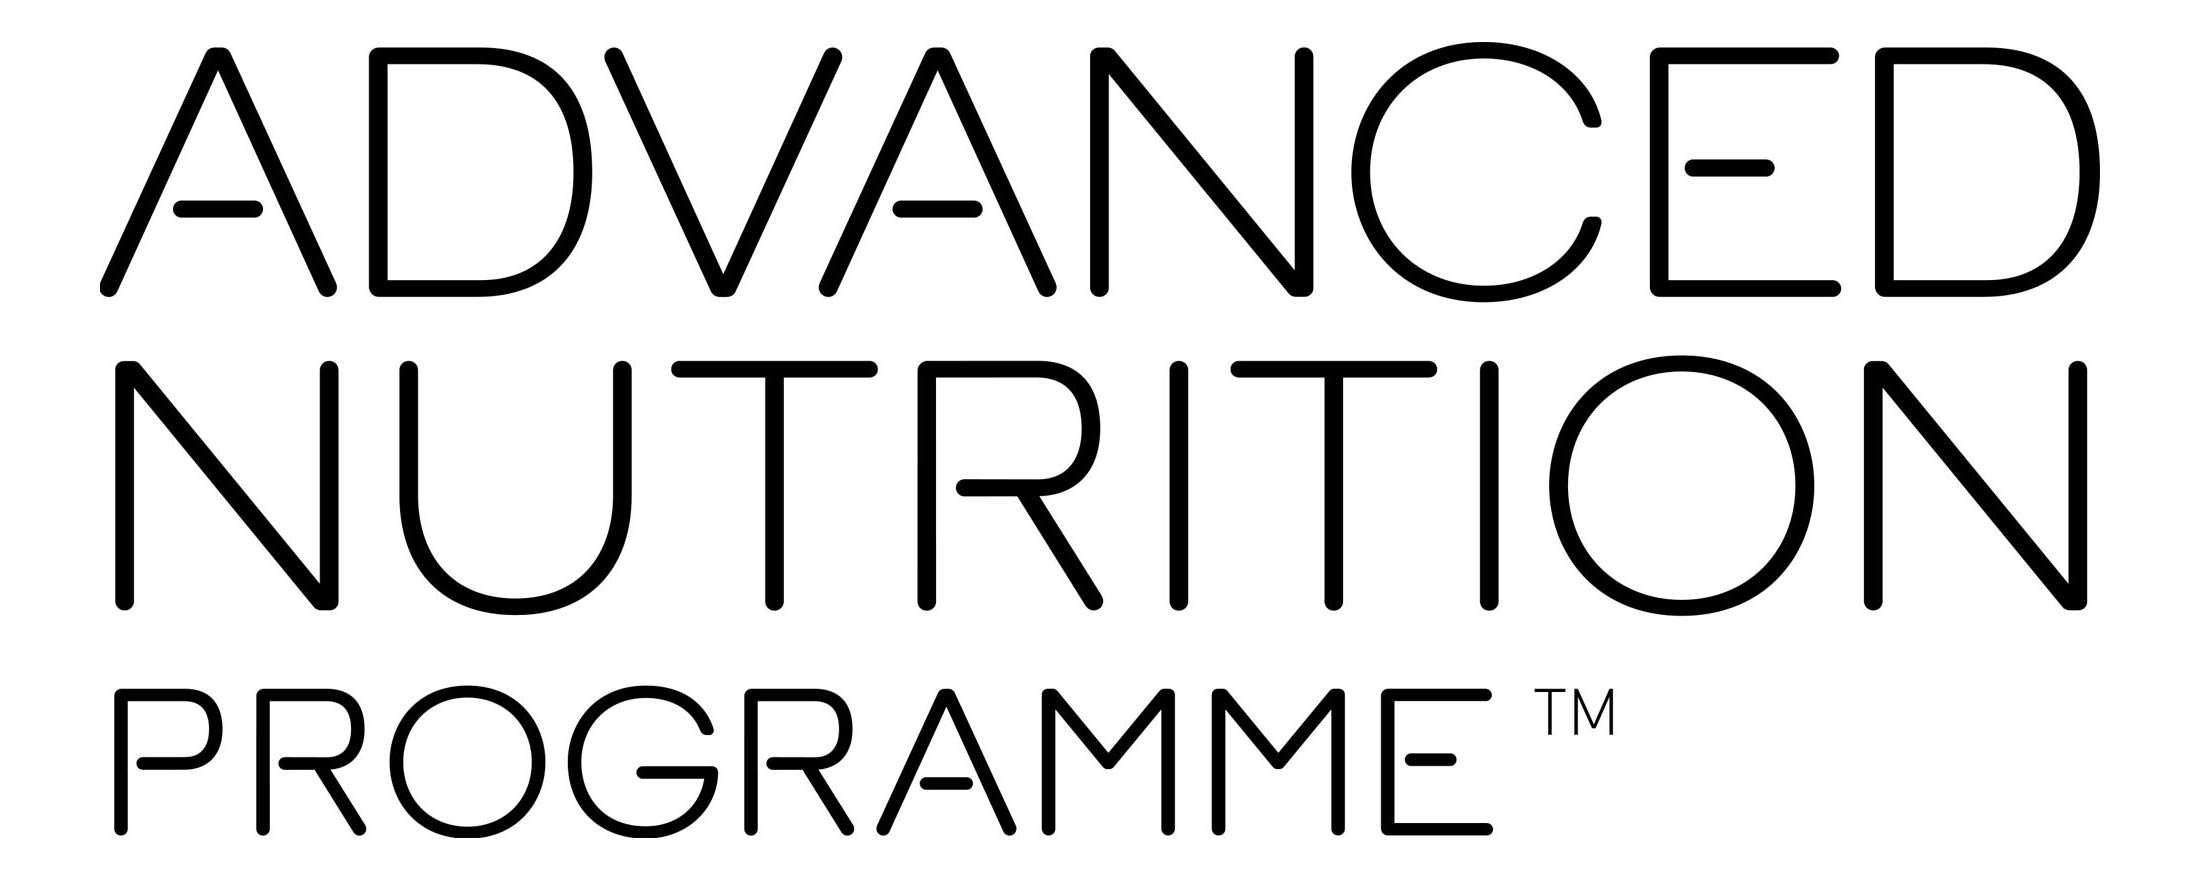 Advanced Nutrition Programme Header